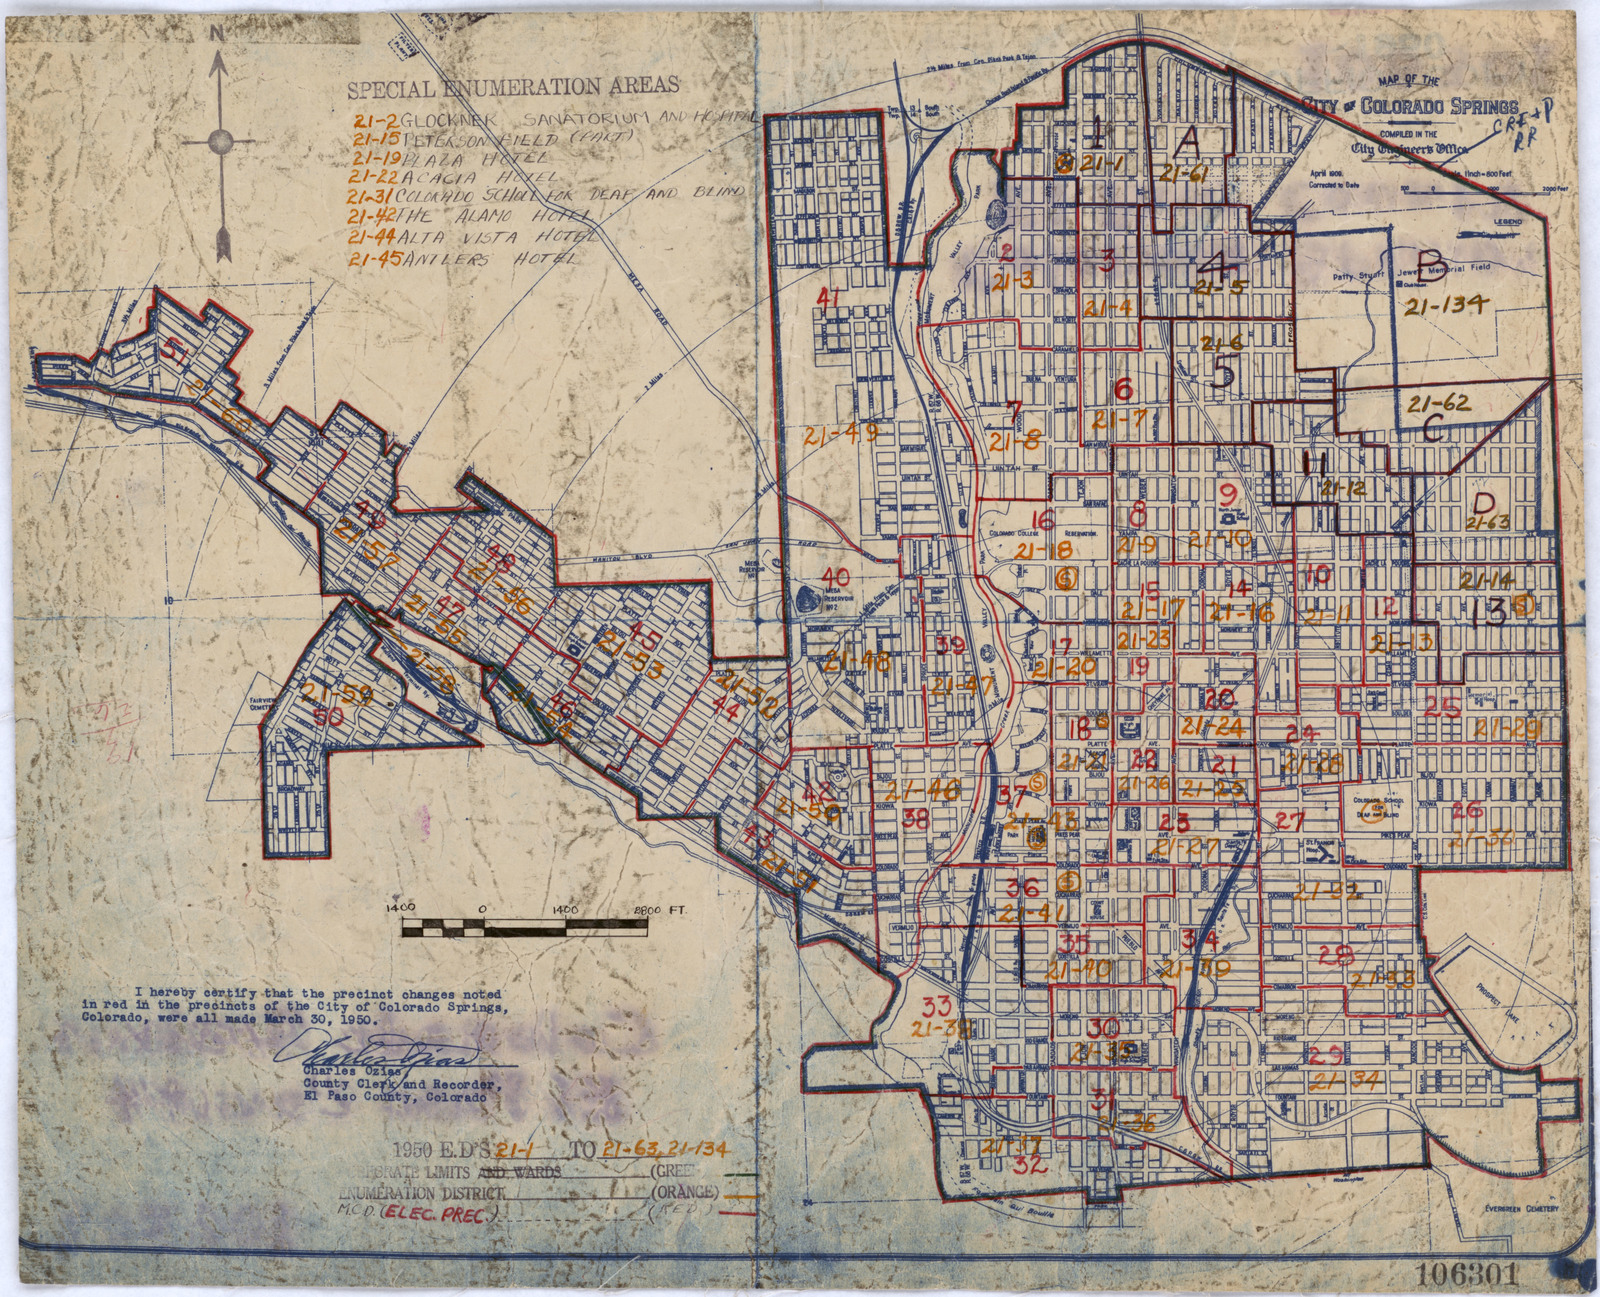 1950 Census Enumeration District Maps - Colorado (CO) - El Paso ...